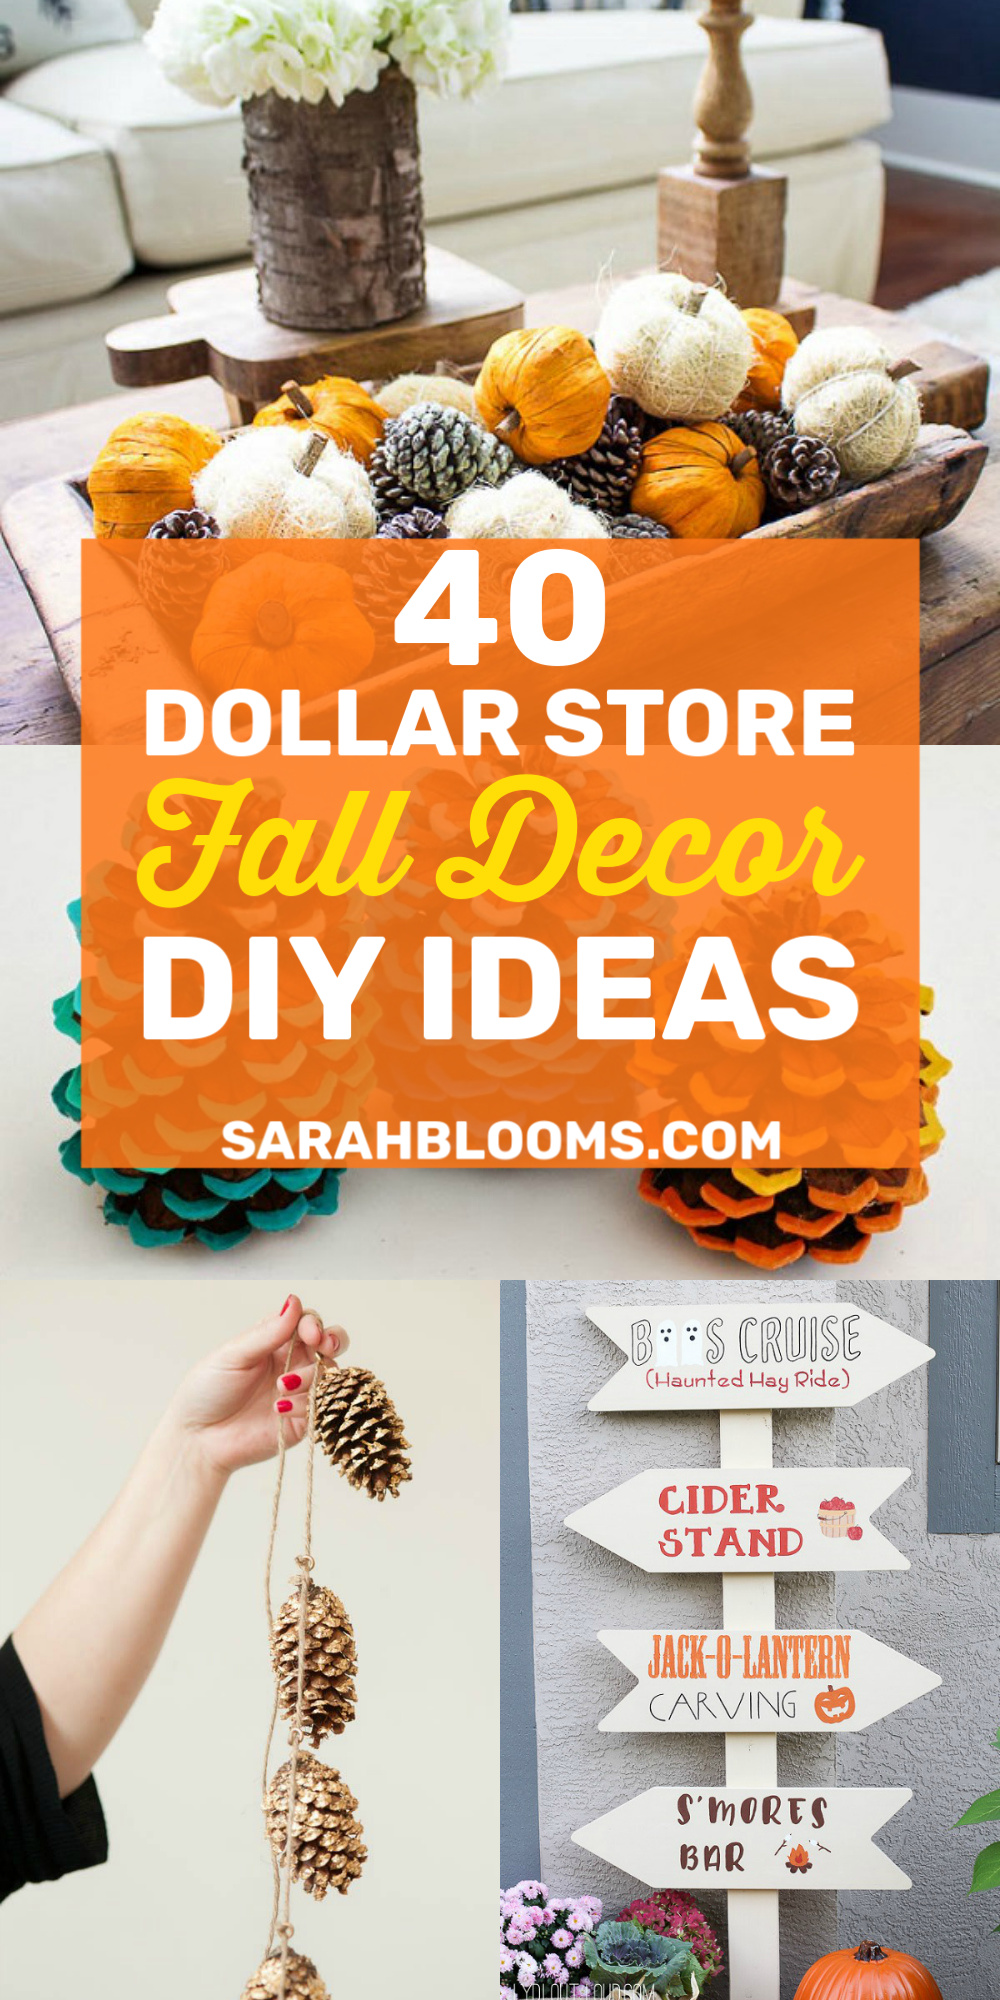 40 Must-See Dollar Store DIY Fall Décor Ideas - Sarah Blooms